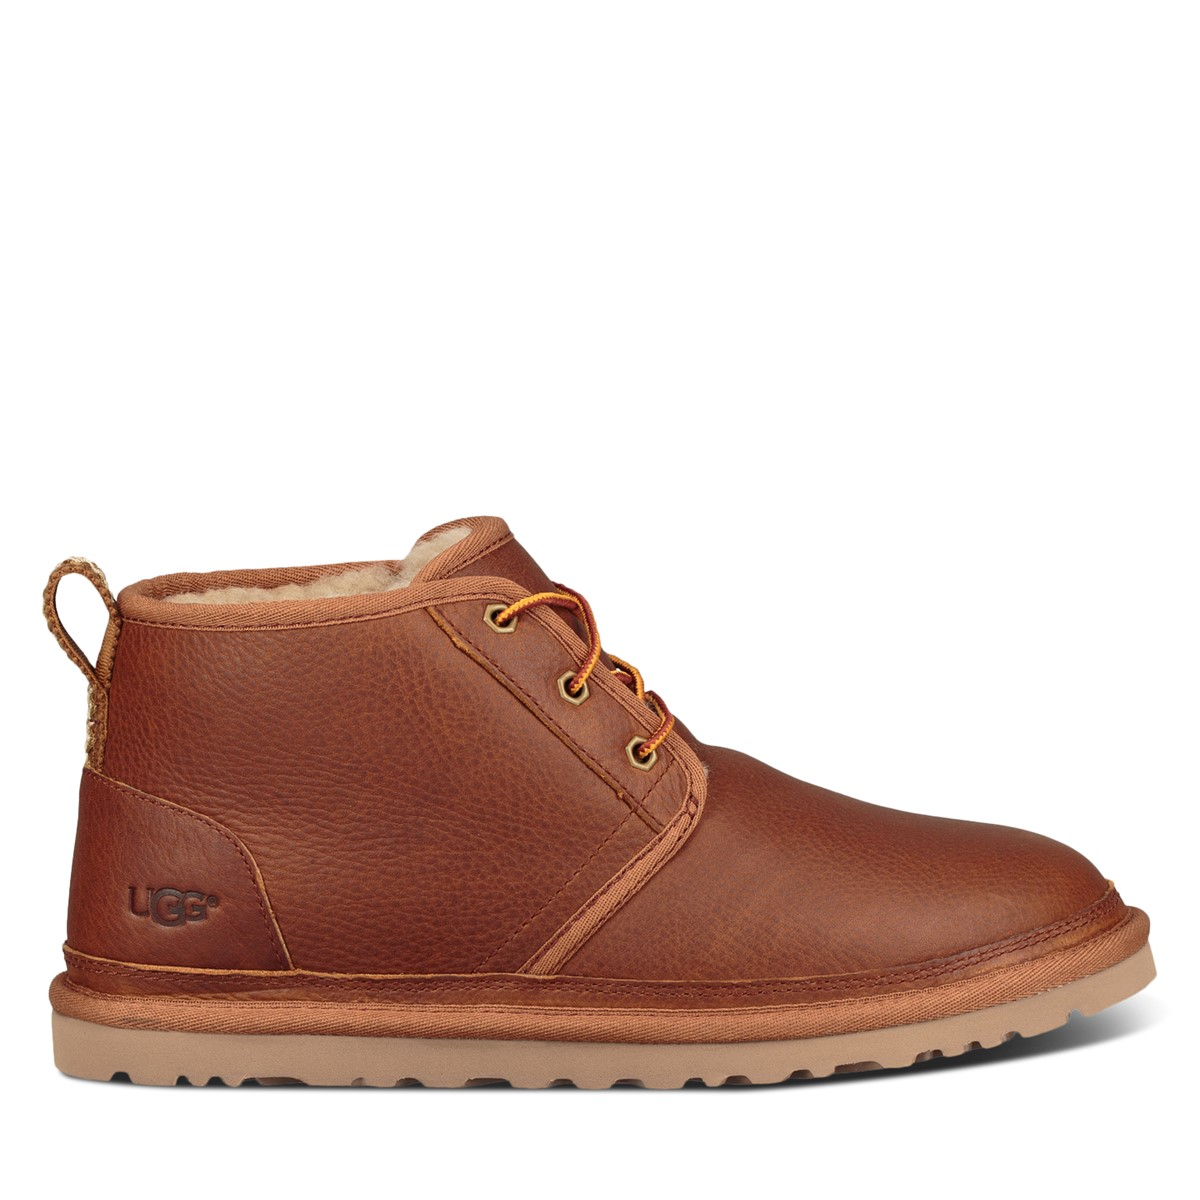 Men's Neumel Boots in Chestnut